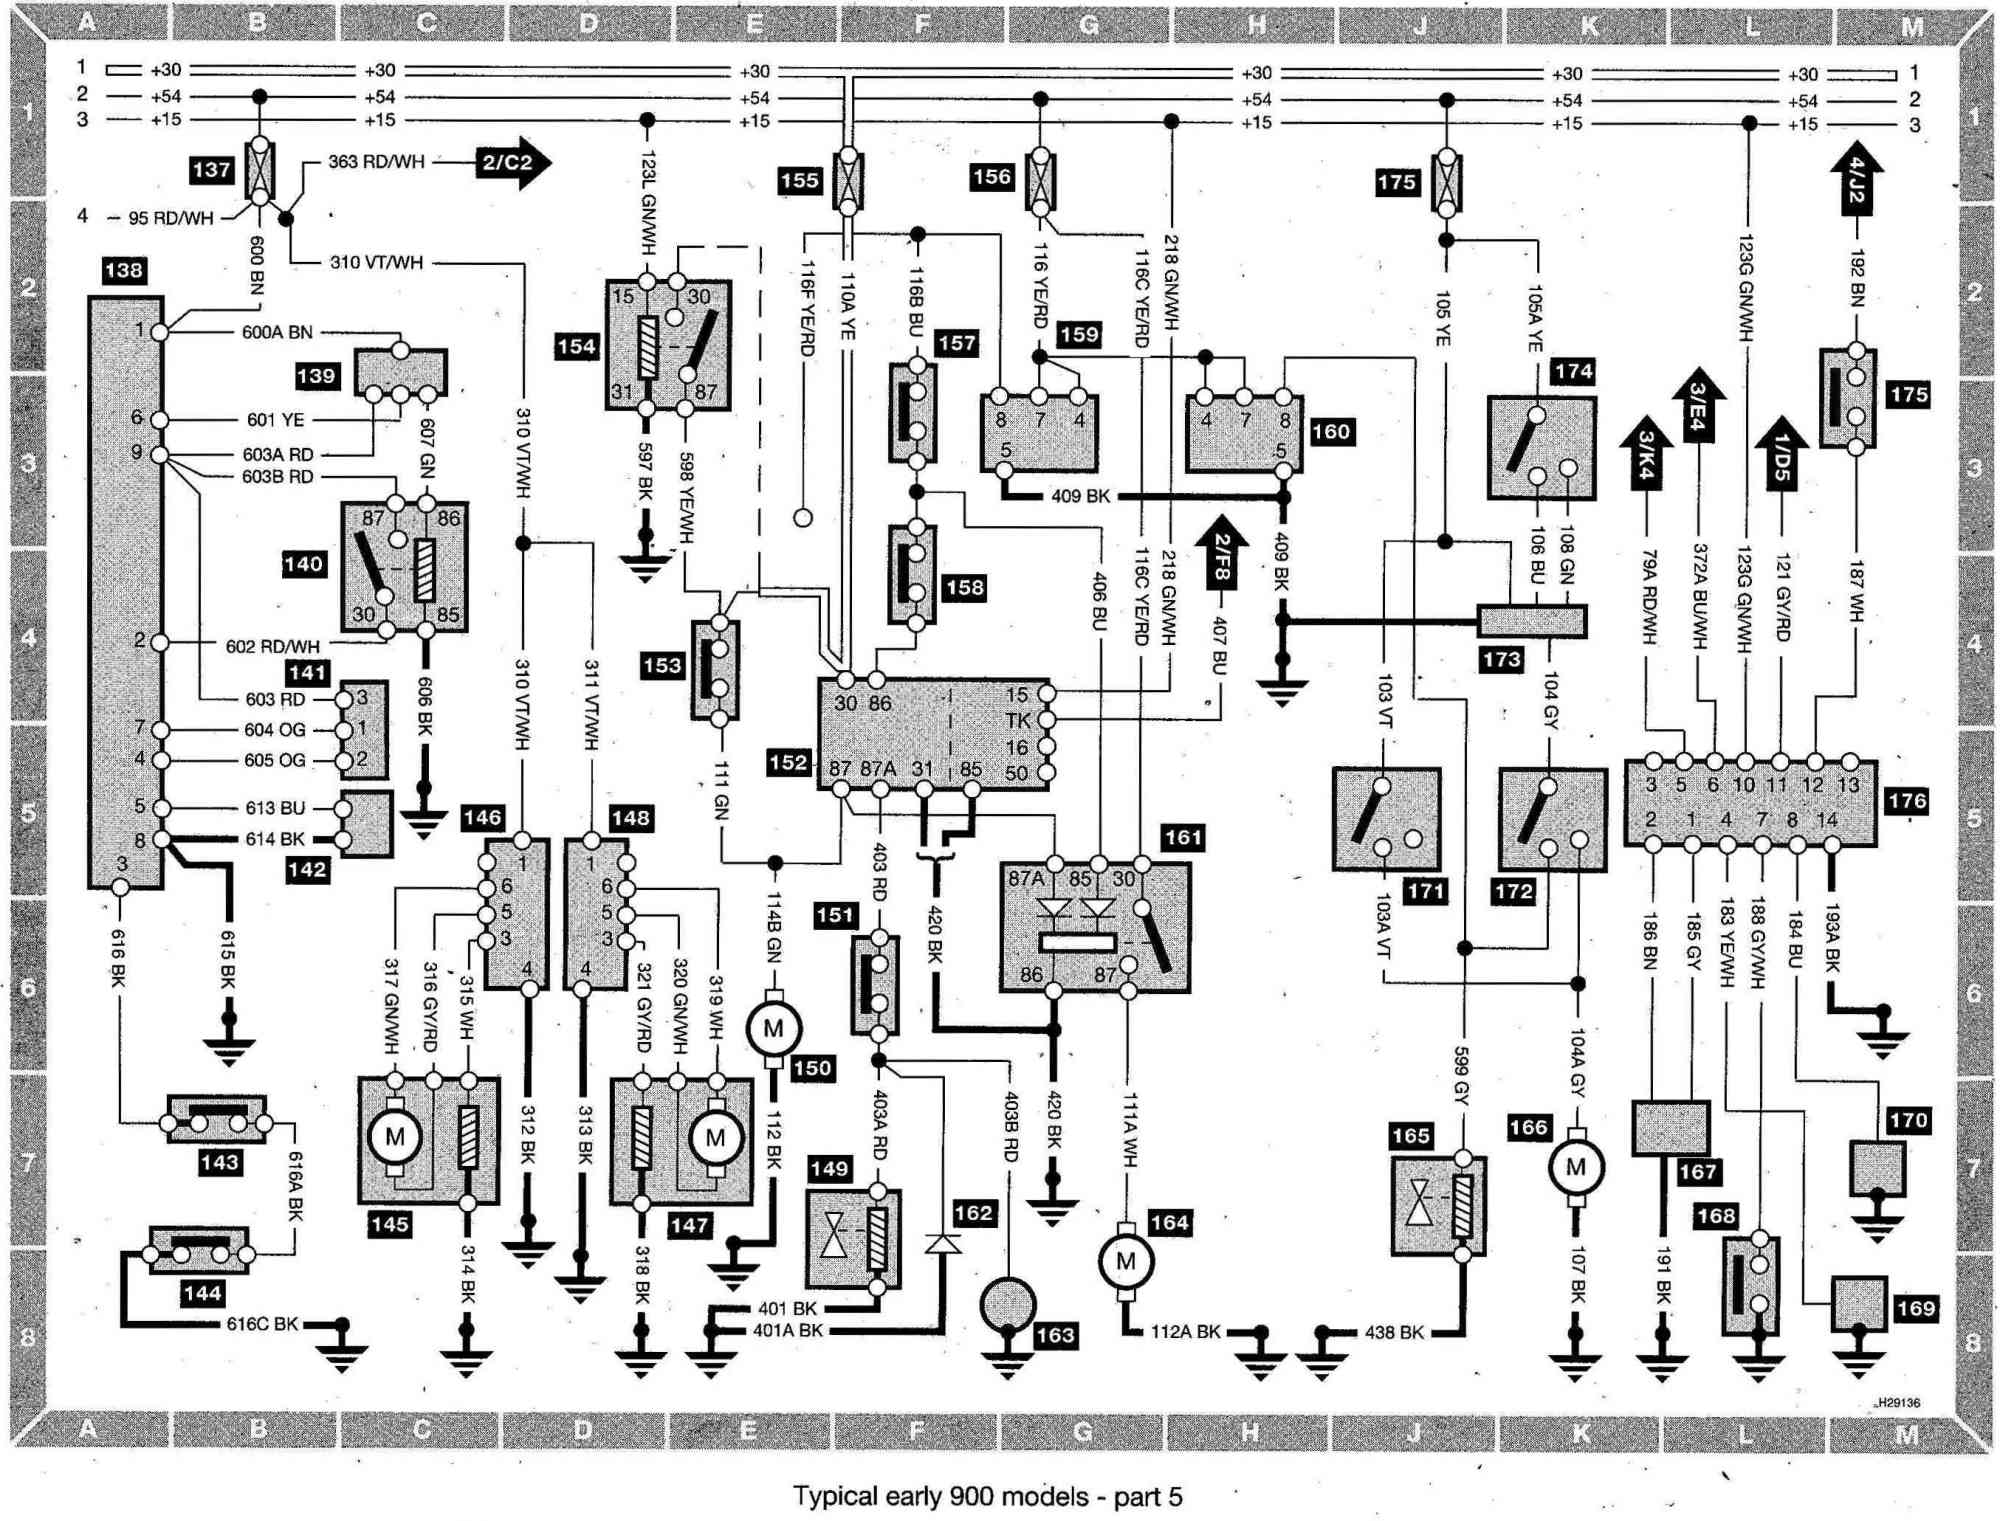 hight resolution of saab 9 5 radio wiring diagram wiring diagram databasewell saab 9 3 radio wiring diagram saab